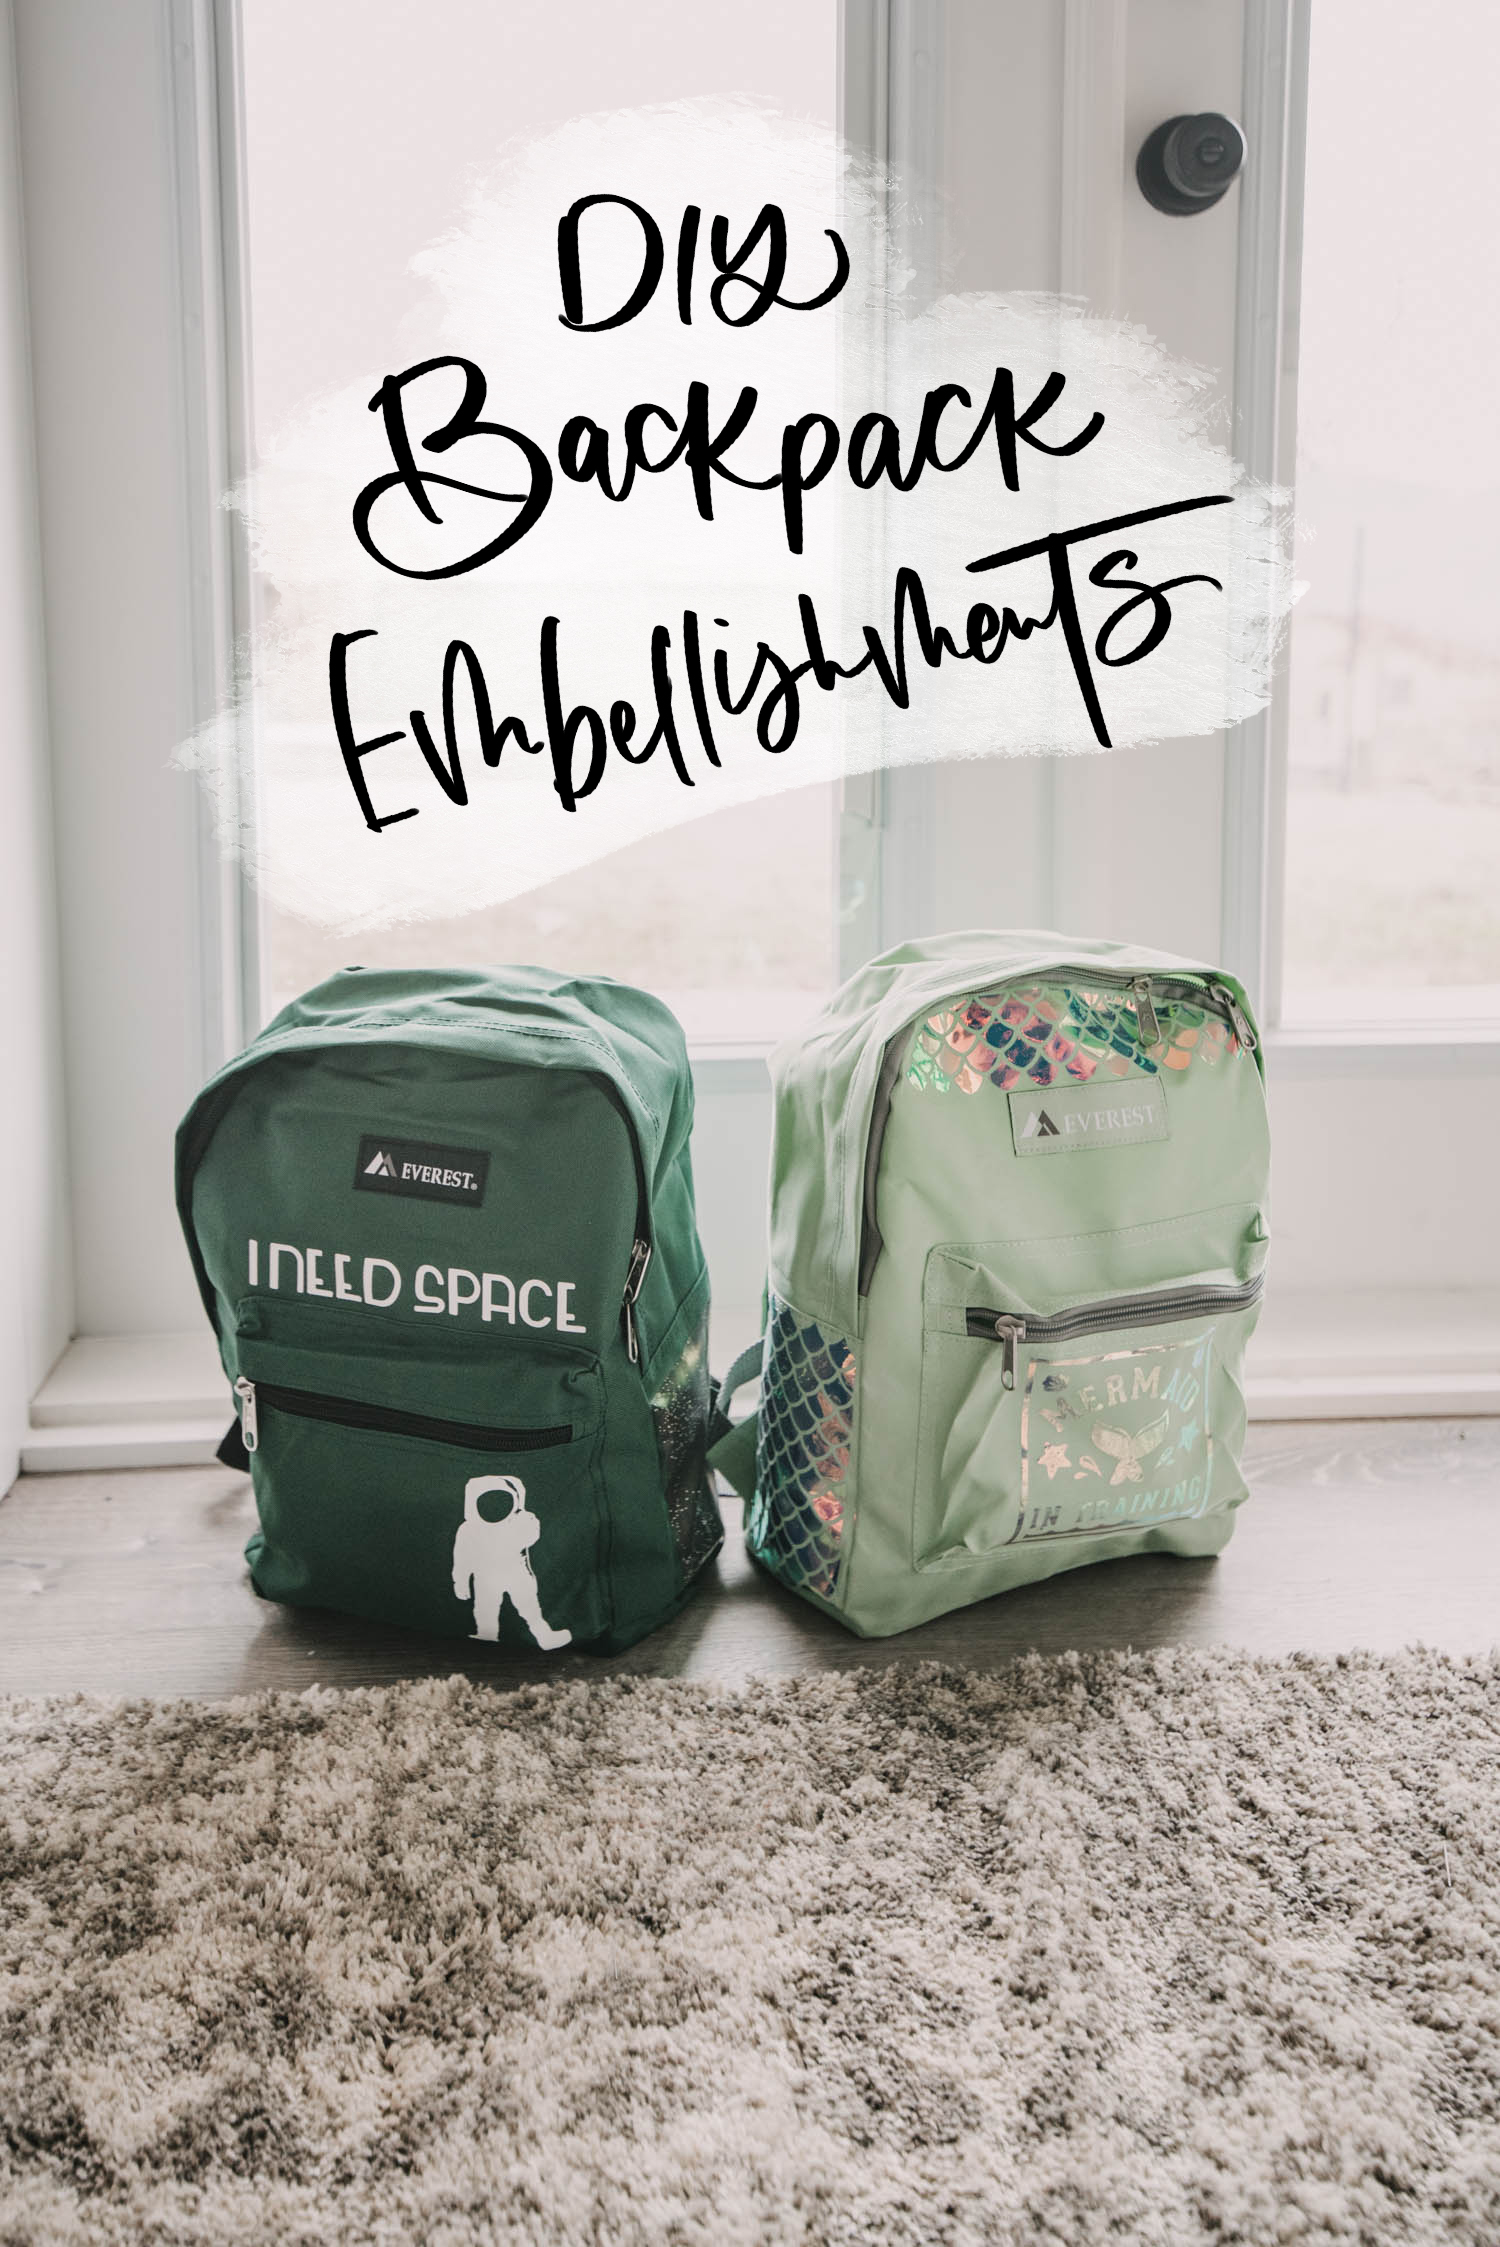 How to Iron On to Backpacks with Cricut